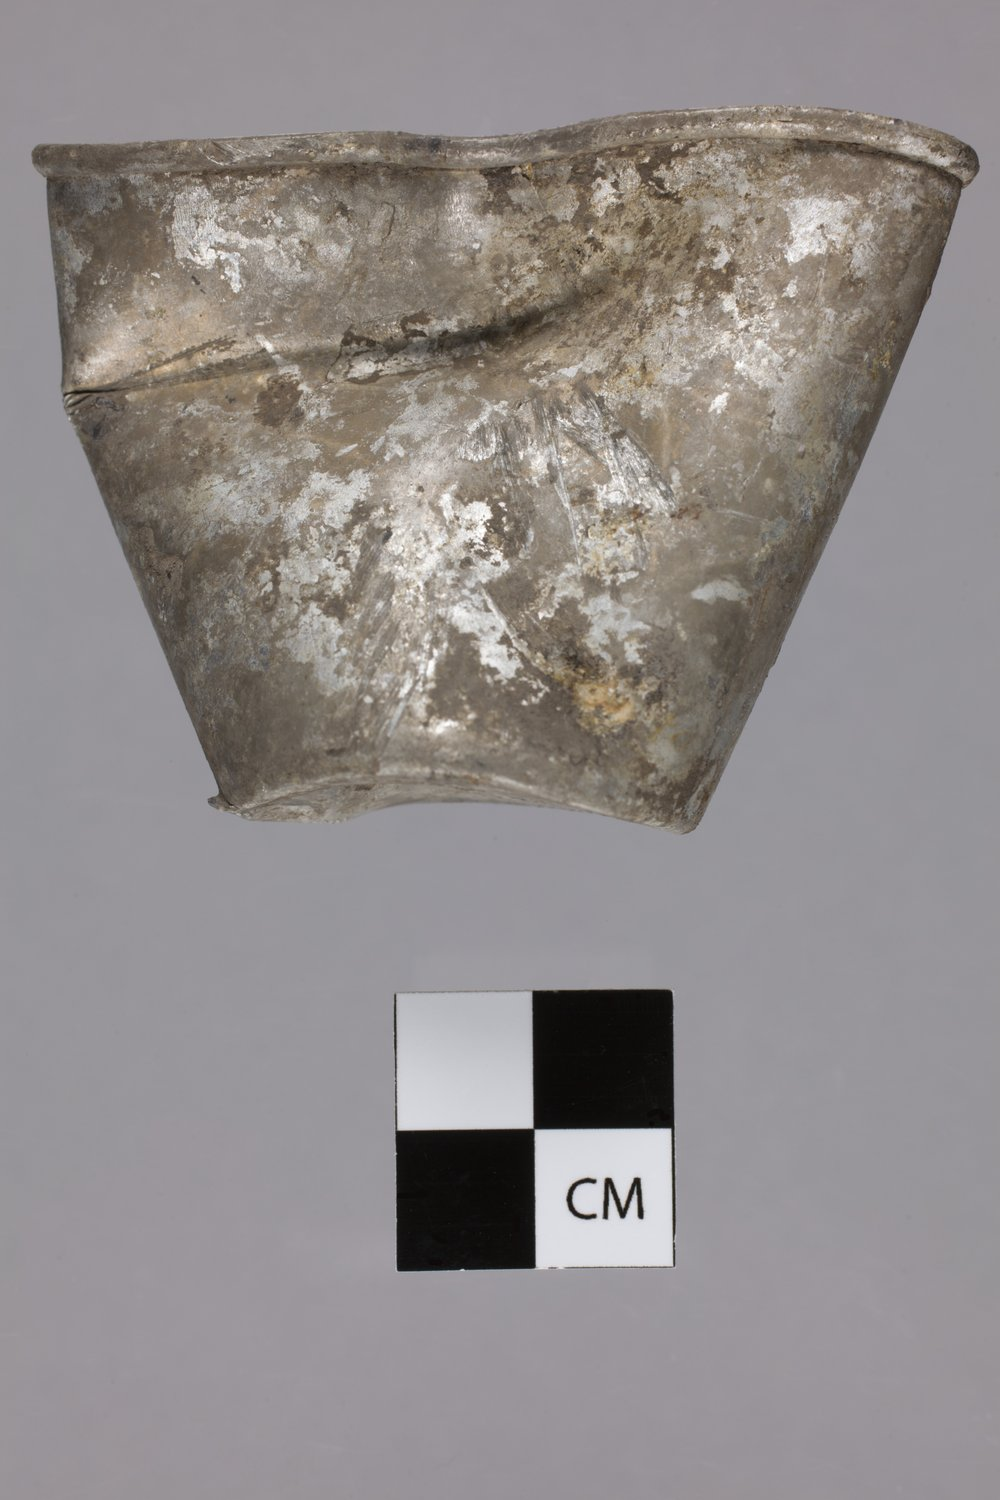 Shot Glass from the Kaw Mission, 14MO368 - 3